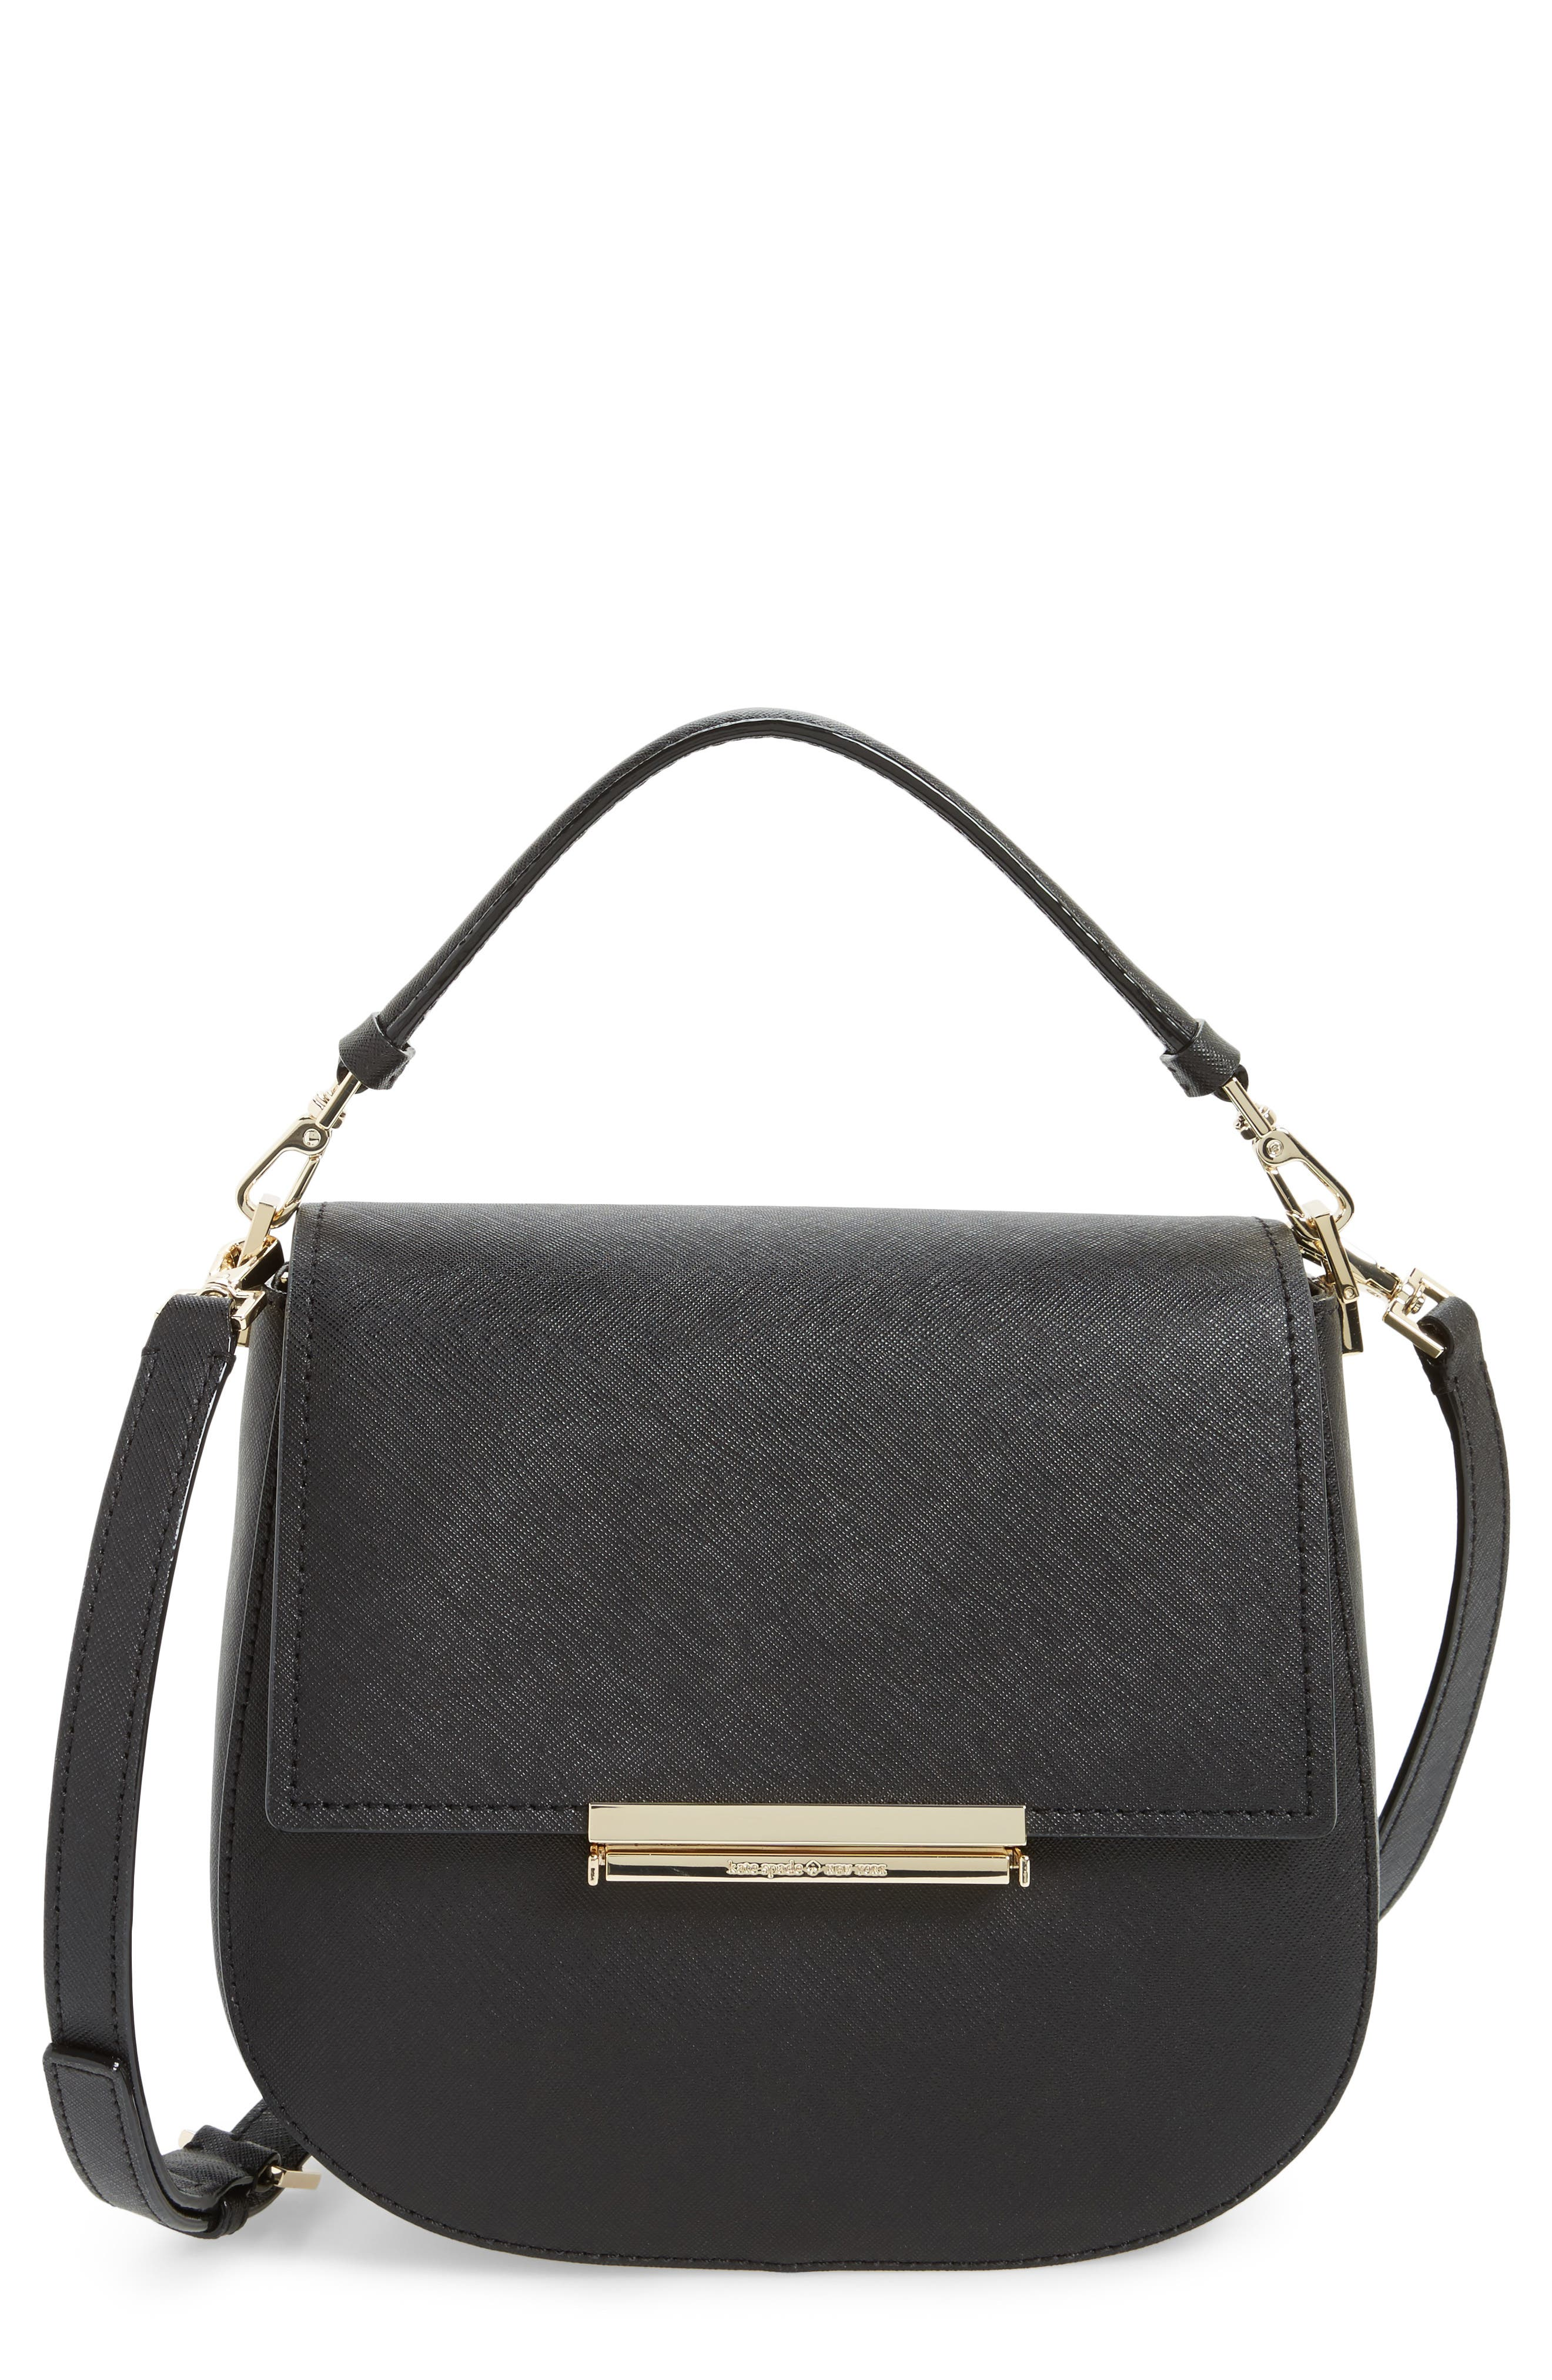 make it mine - byrdie leather saddle bag,                         Main,                         color, 001